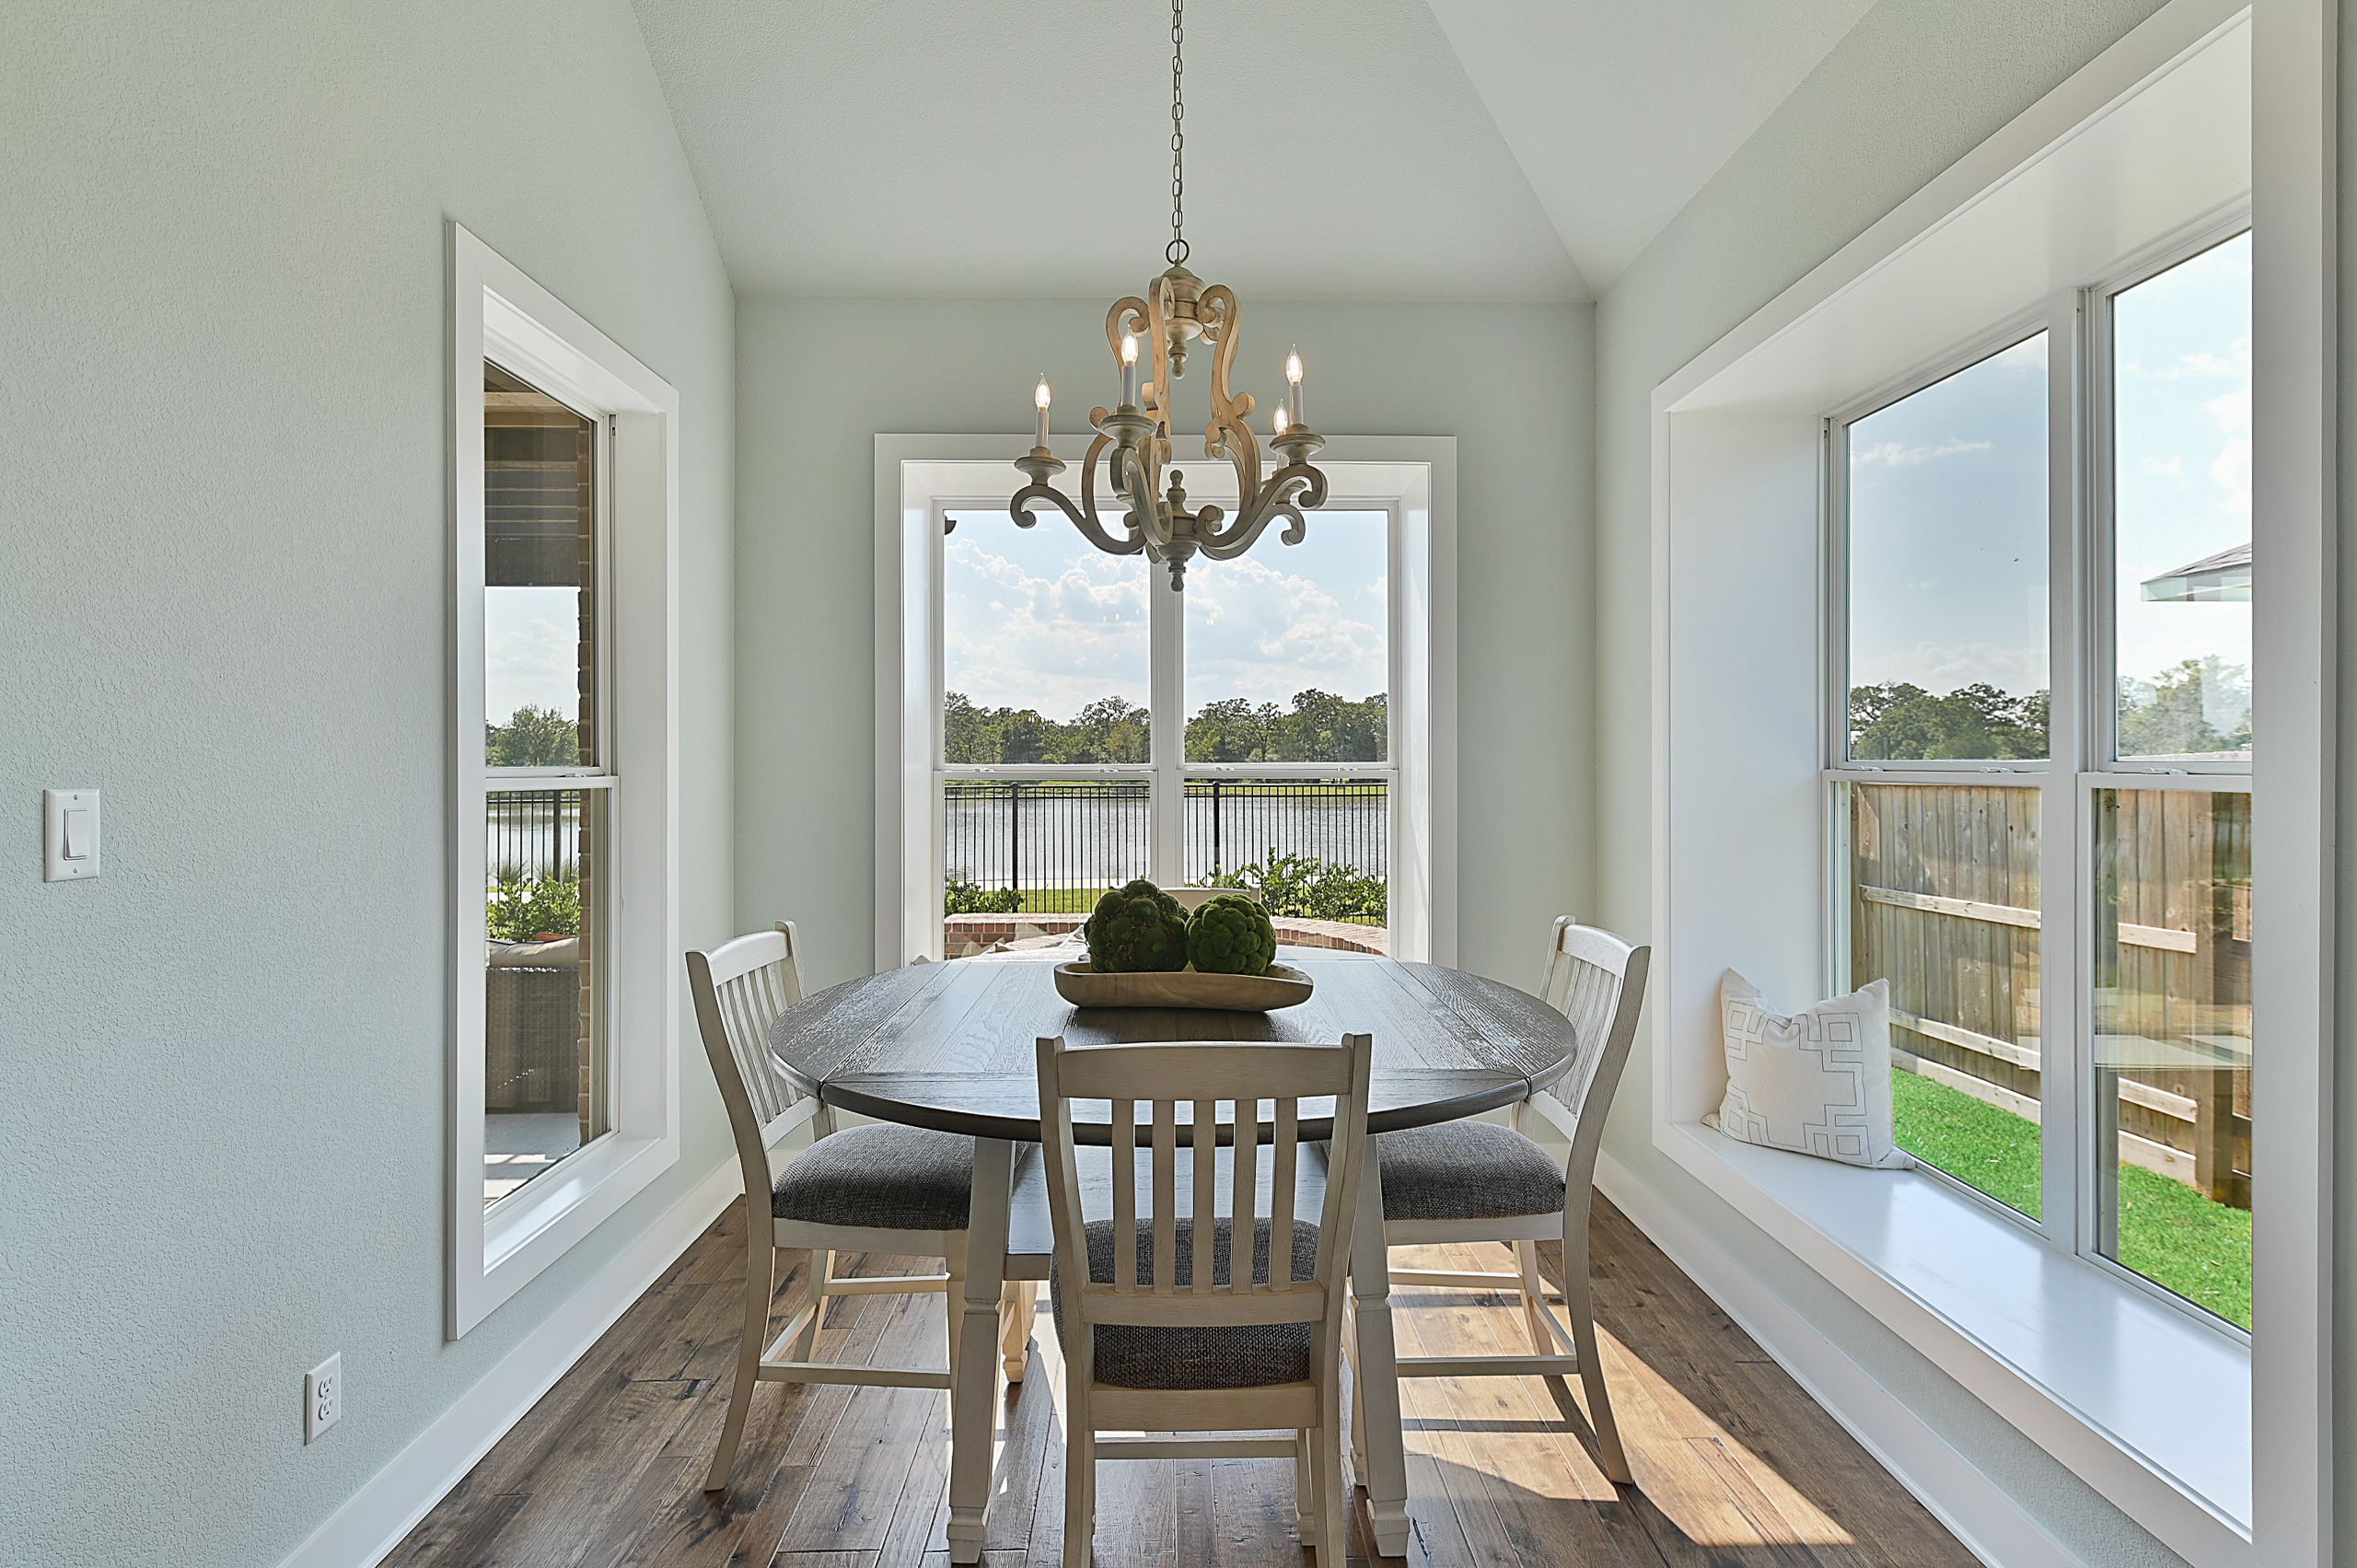 Kitchen featured in the Emerson By Blackstone Homes in Bryan-College Station, TX